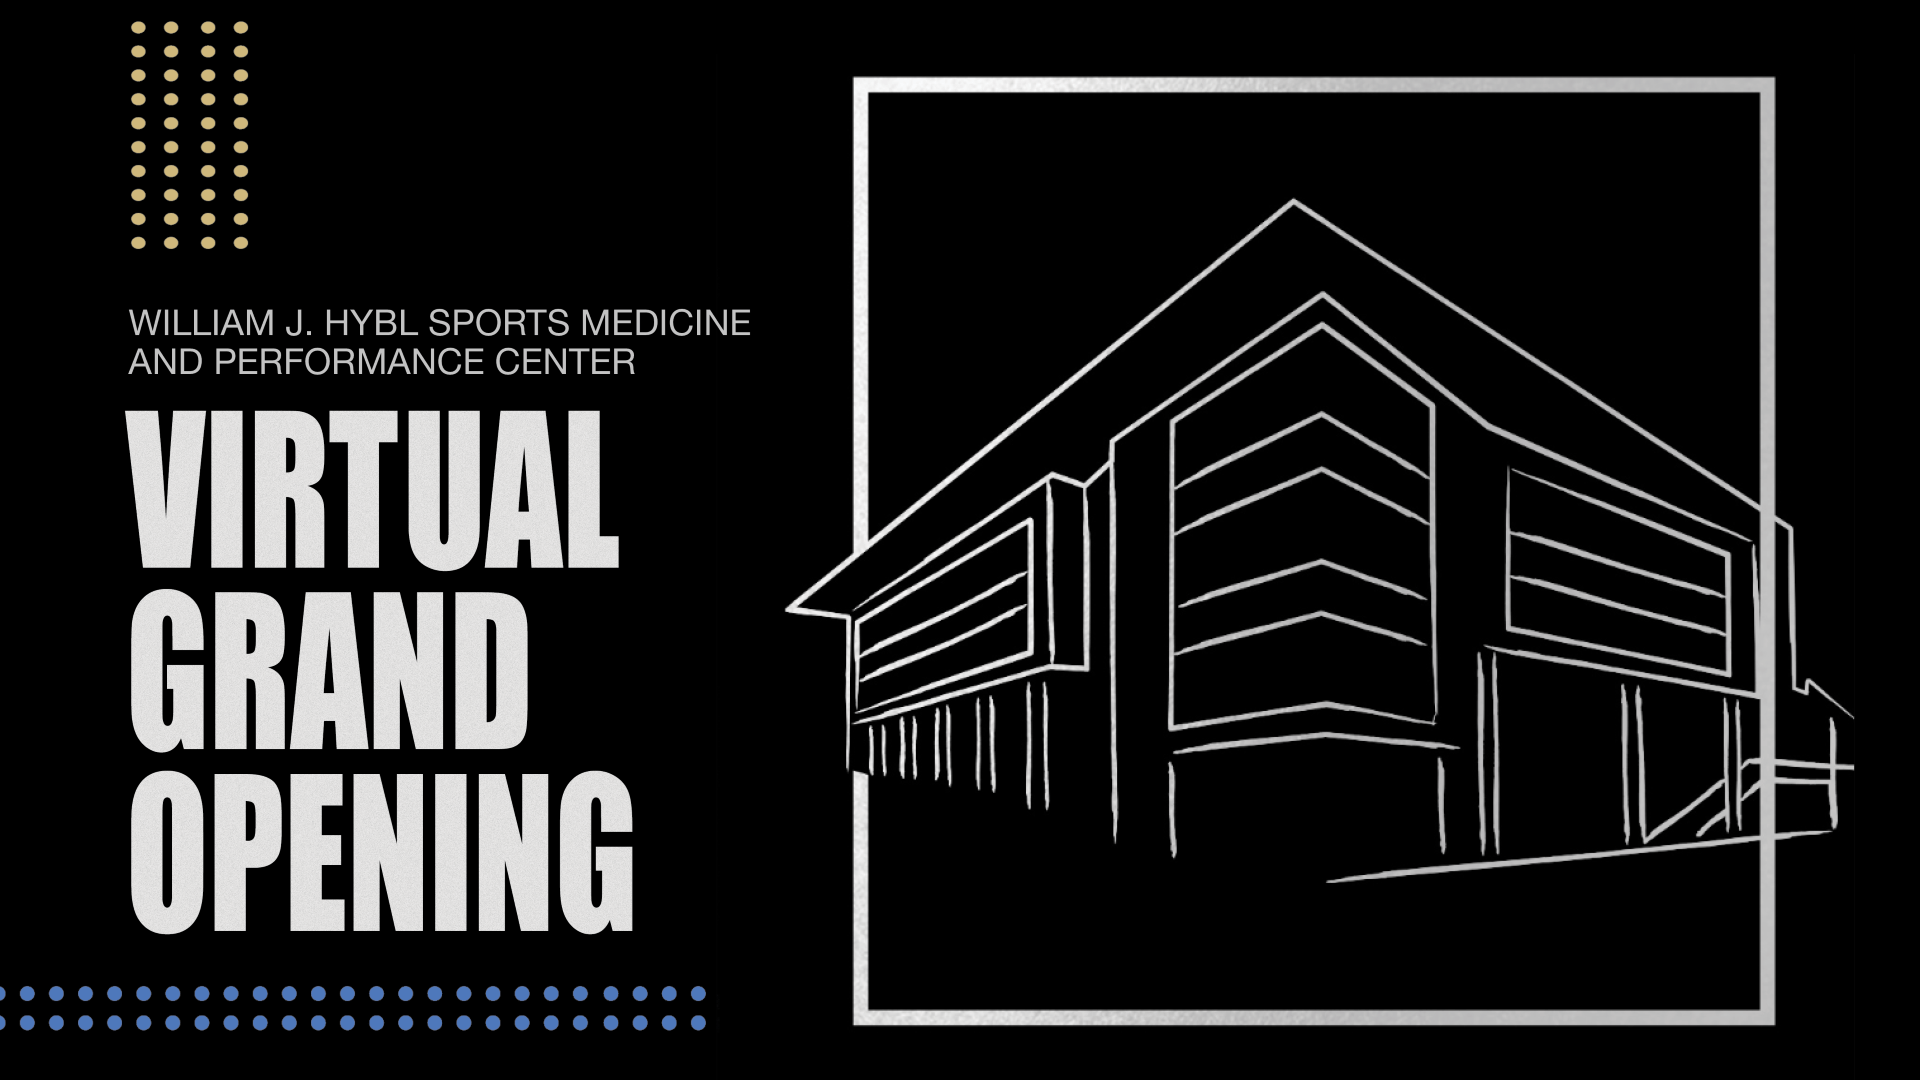 Graphic for the virtual grand opening of the William J. Hybl Sports Medicine and Performance Center